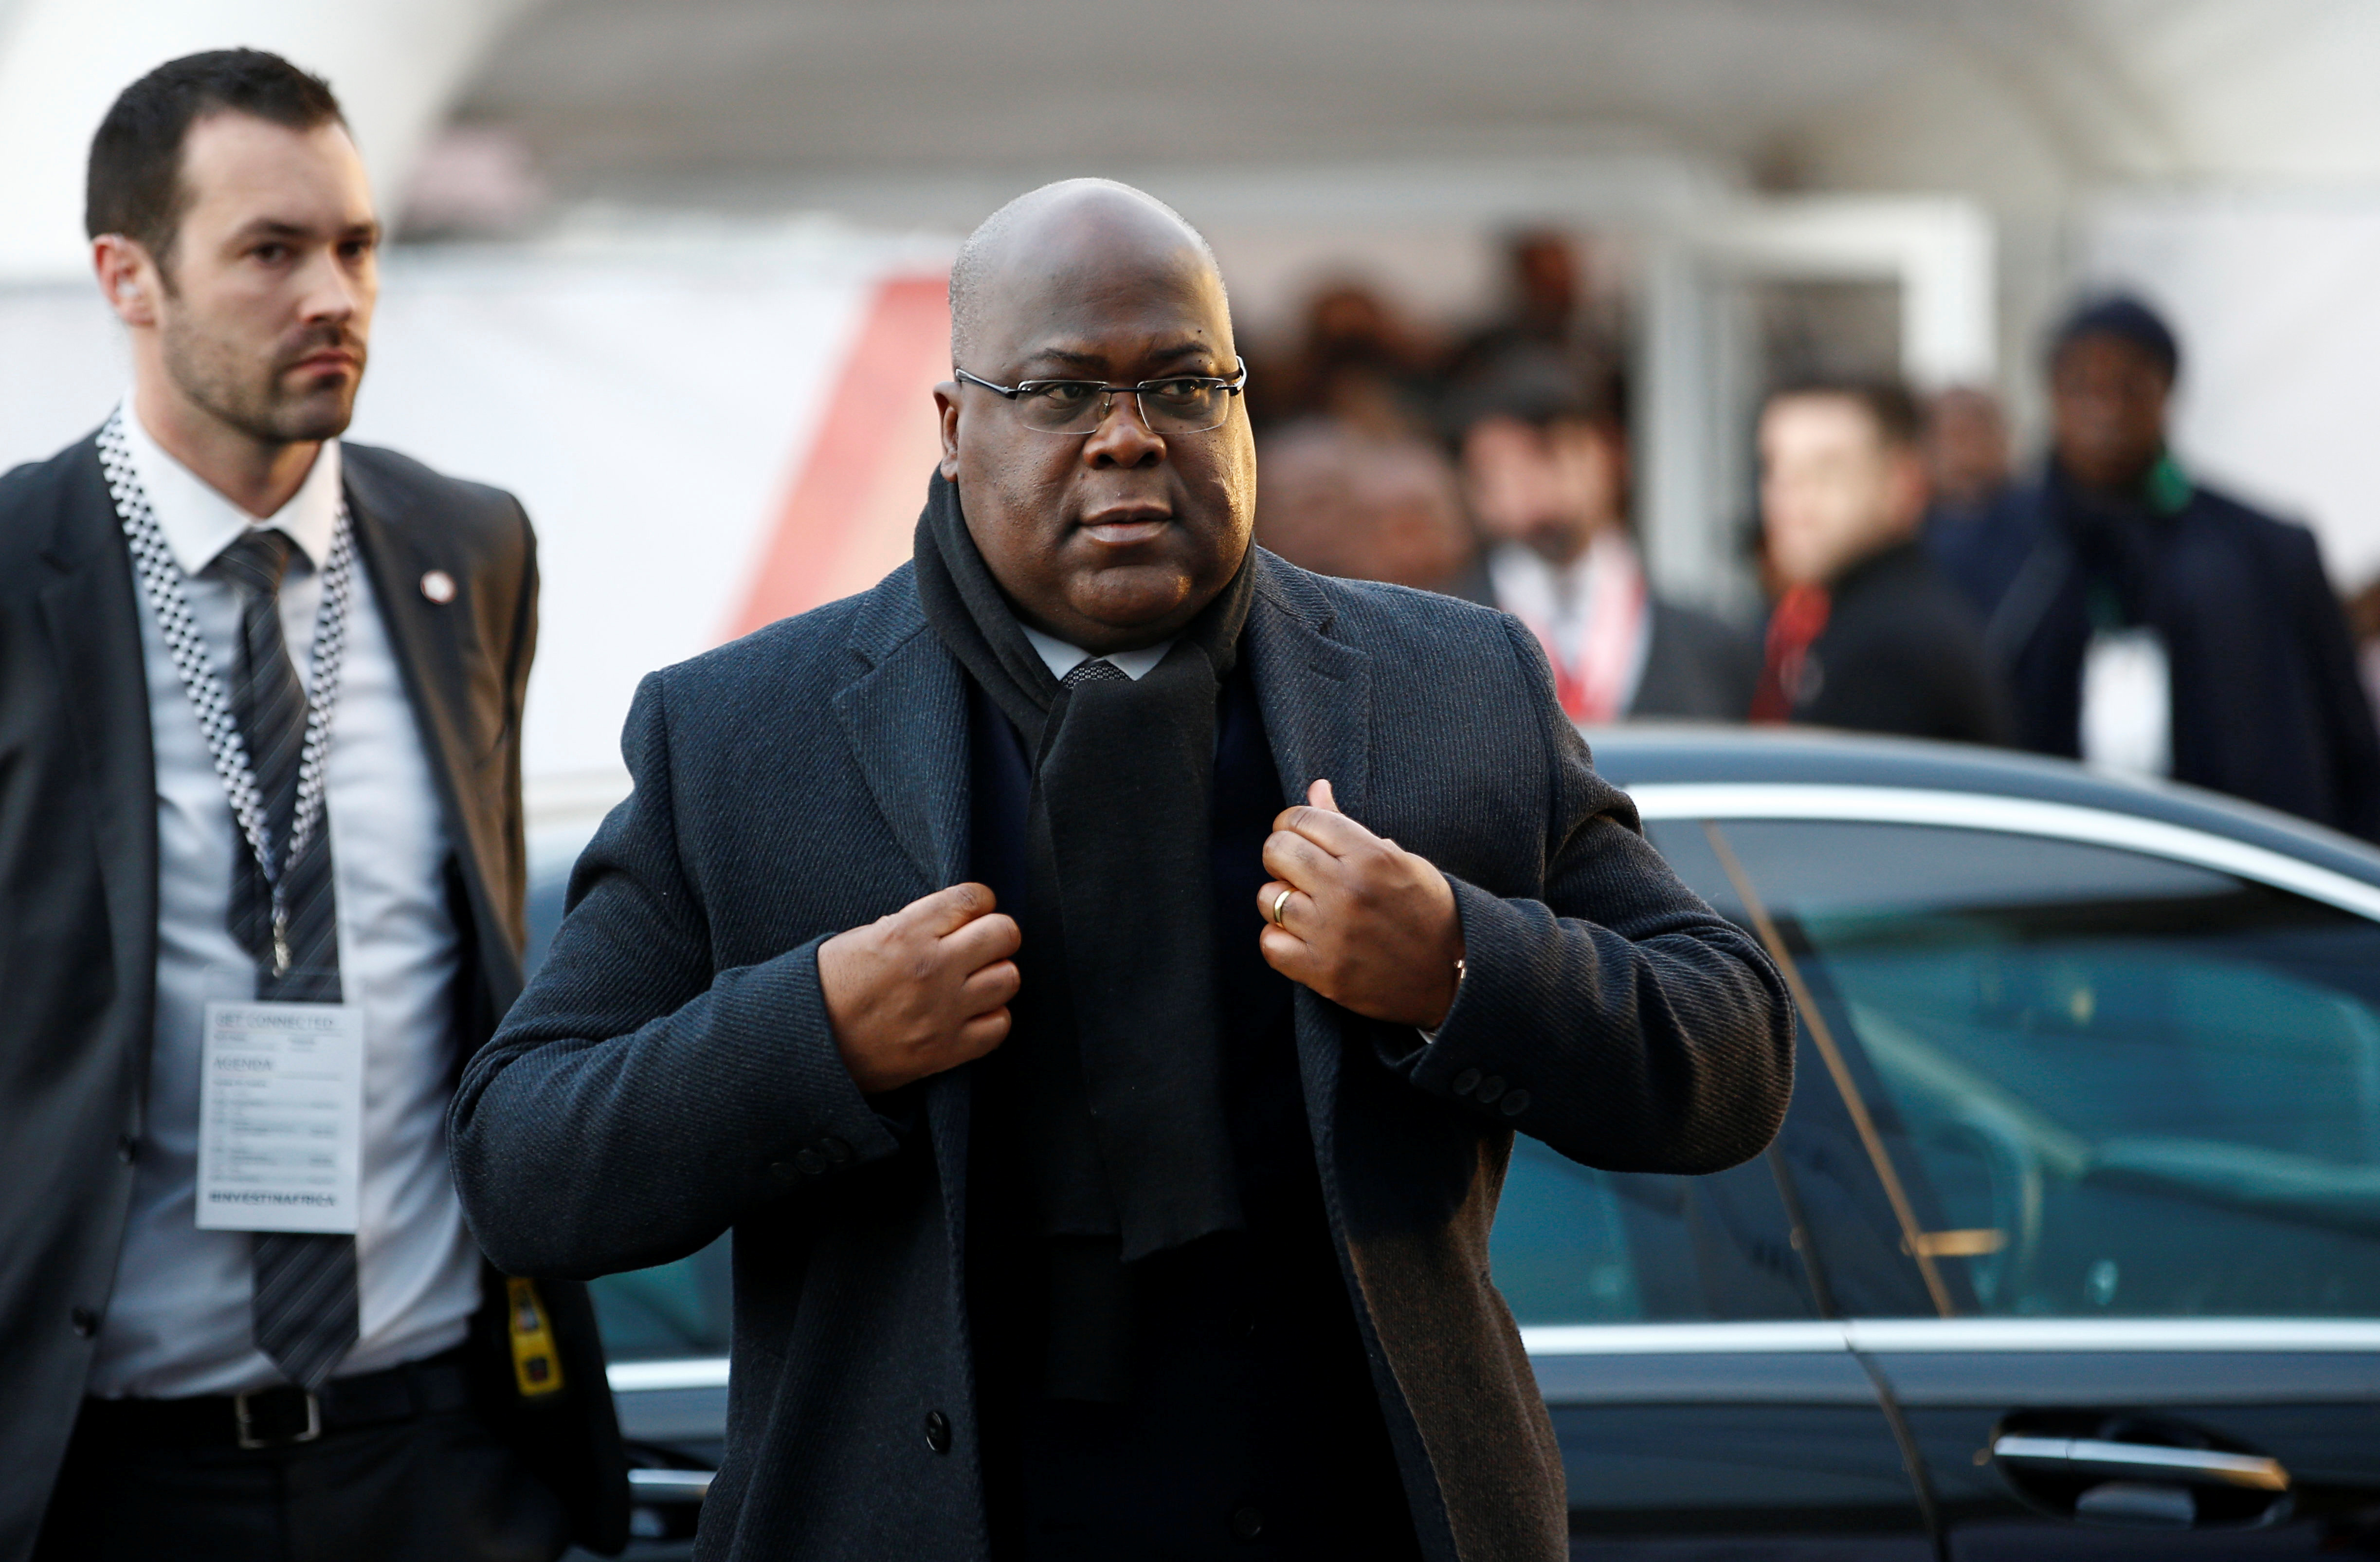 Democratic Republic of Congo President Felix Tshisekedi arrives at the UK-Africa Investment Summit in London, Britain January 20, 2020. REUTERS/Henry Nicholls